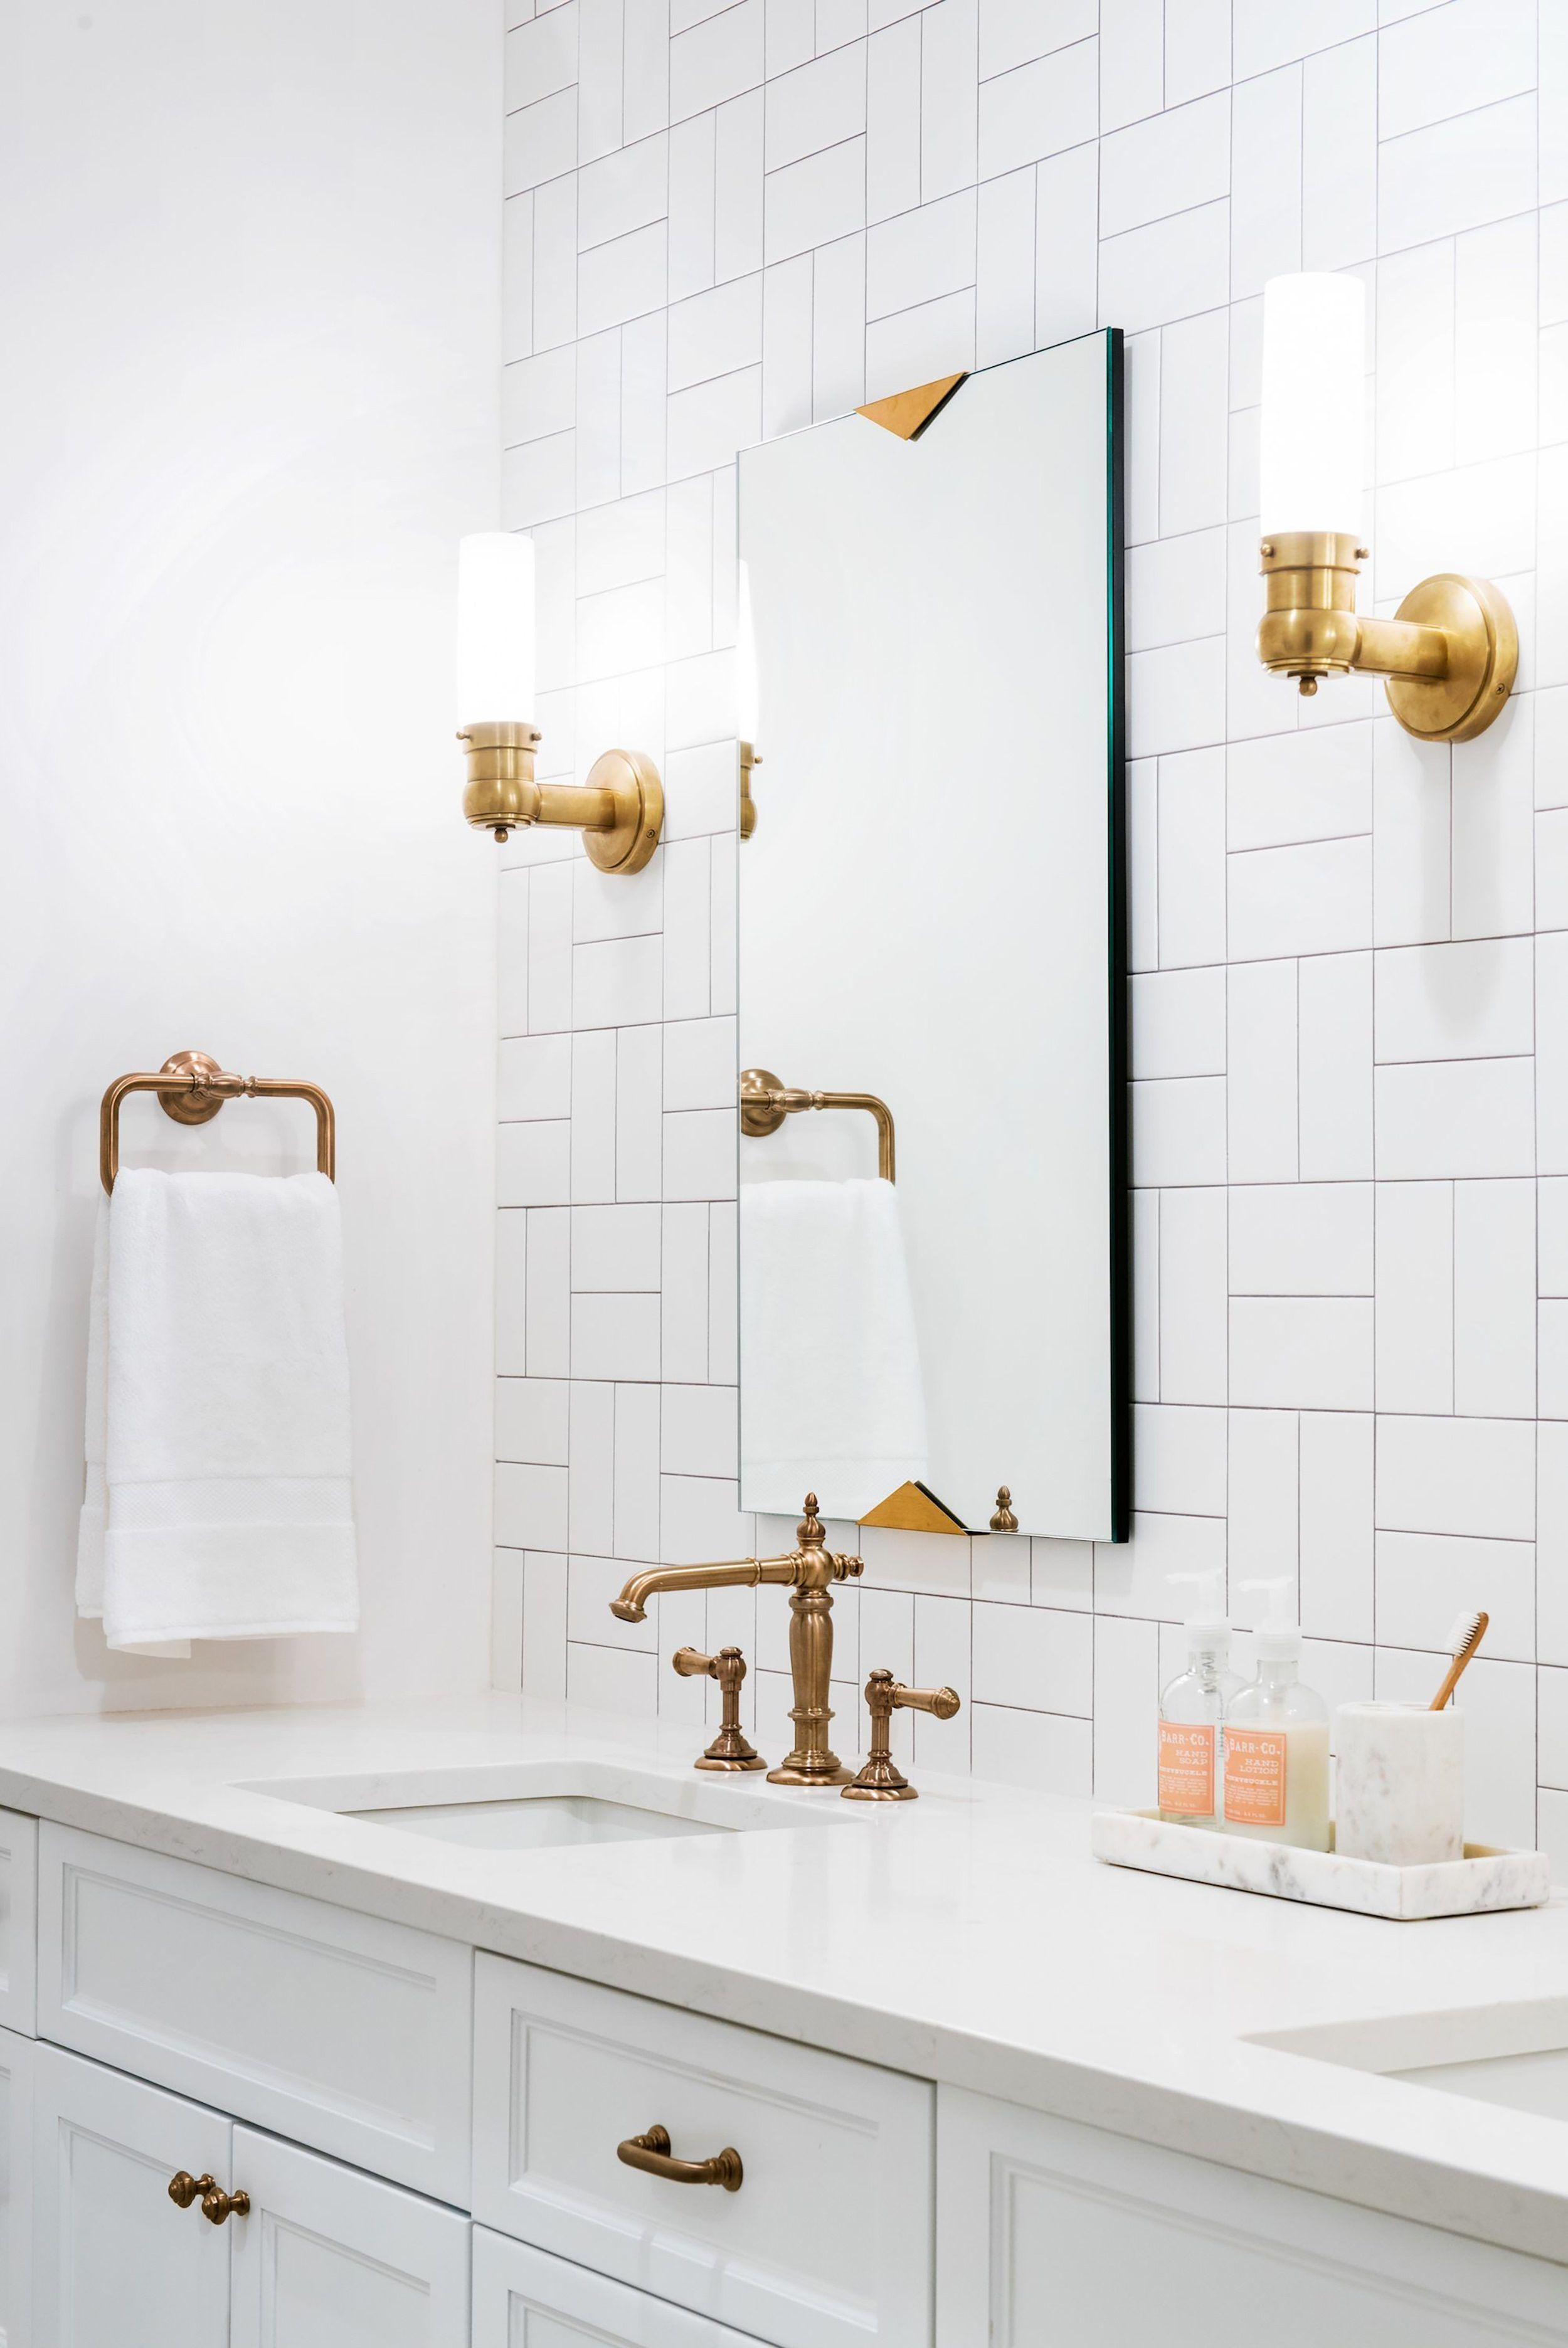 Bathroom Trends Are Stacked Tiles The New Subway Tile Avec Images Salle De Bain Tendance Interieur Salle De Bain Decoration Salle De Bain